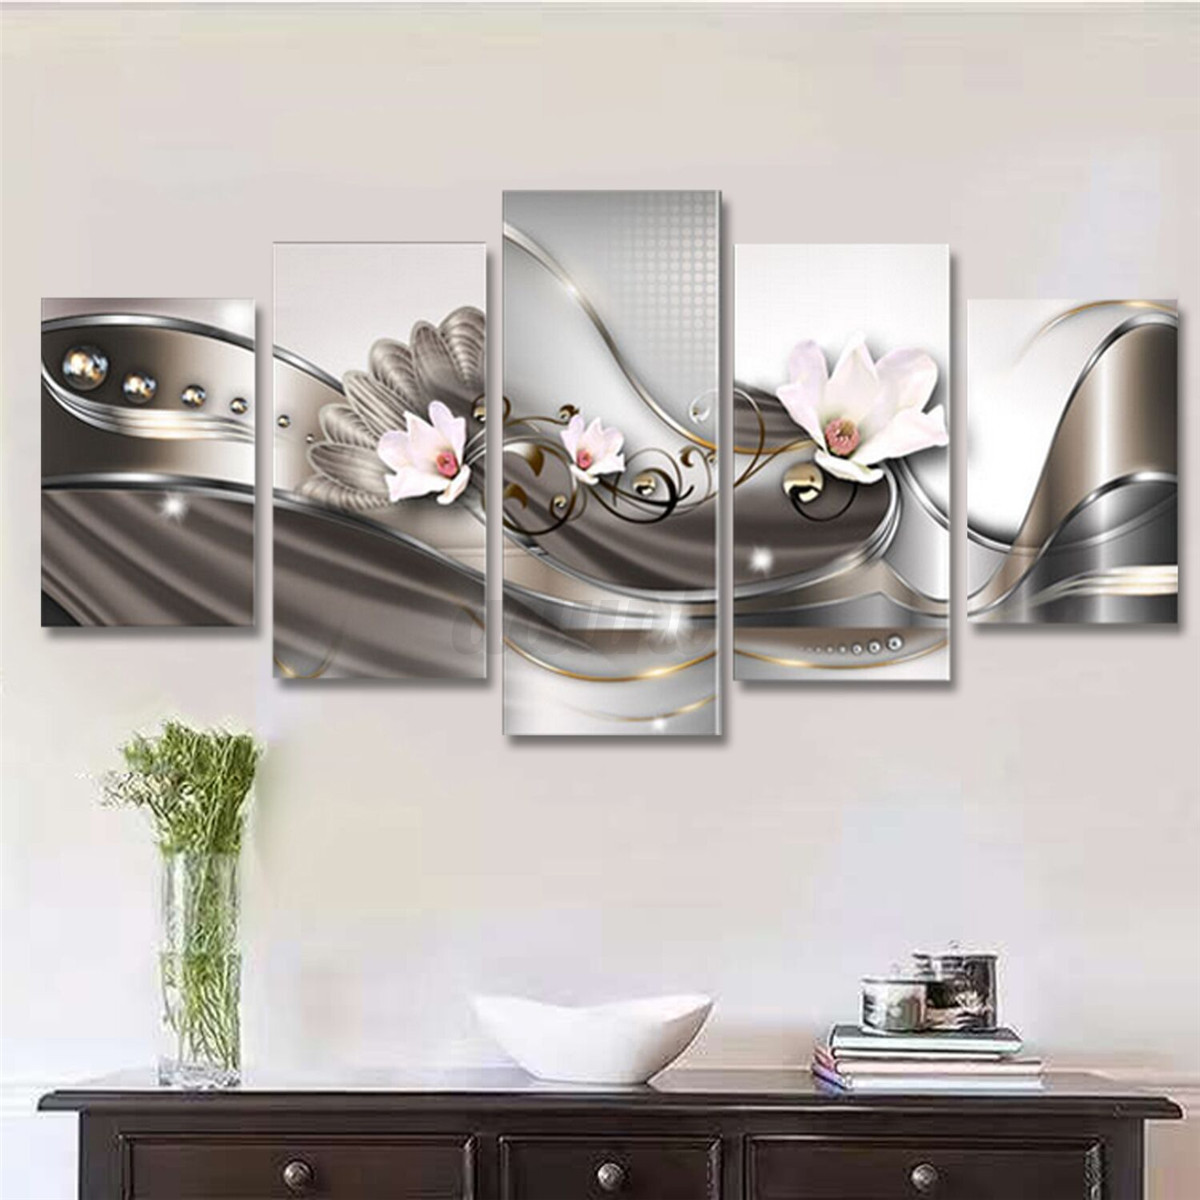 5 PANEL Canvas Print Modern Picture Wall Art Decor Home